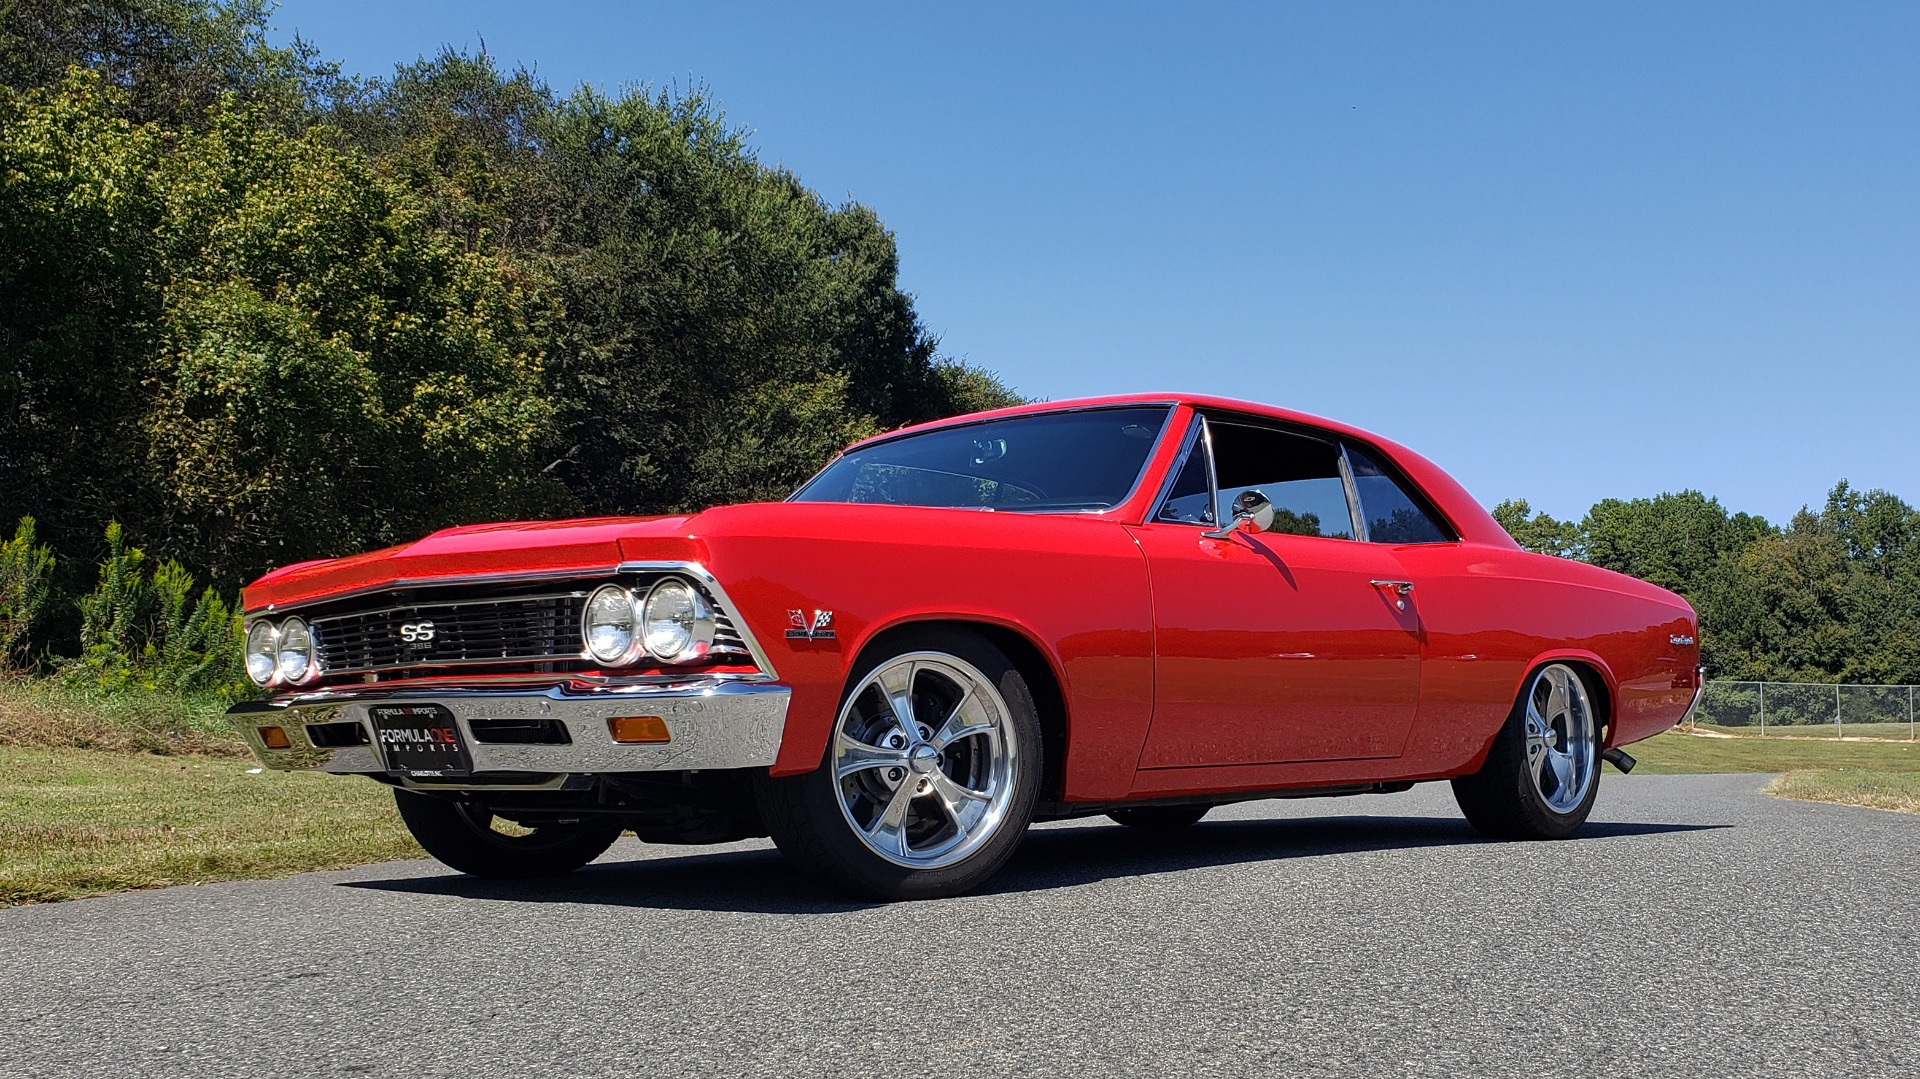 Used 1966 Chevrolet CHEVELLE SS 396 CUSTOM RESTO-MOD / 4-SPEED MANUAL / 12-BOLT REAR for sale $74,999 at Formula Imports in Charlotte NC 28227 2